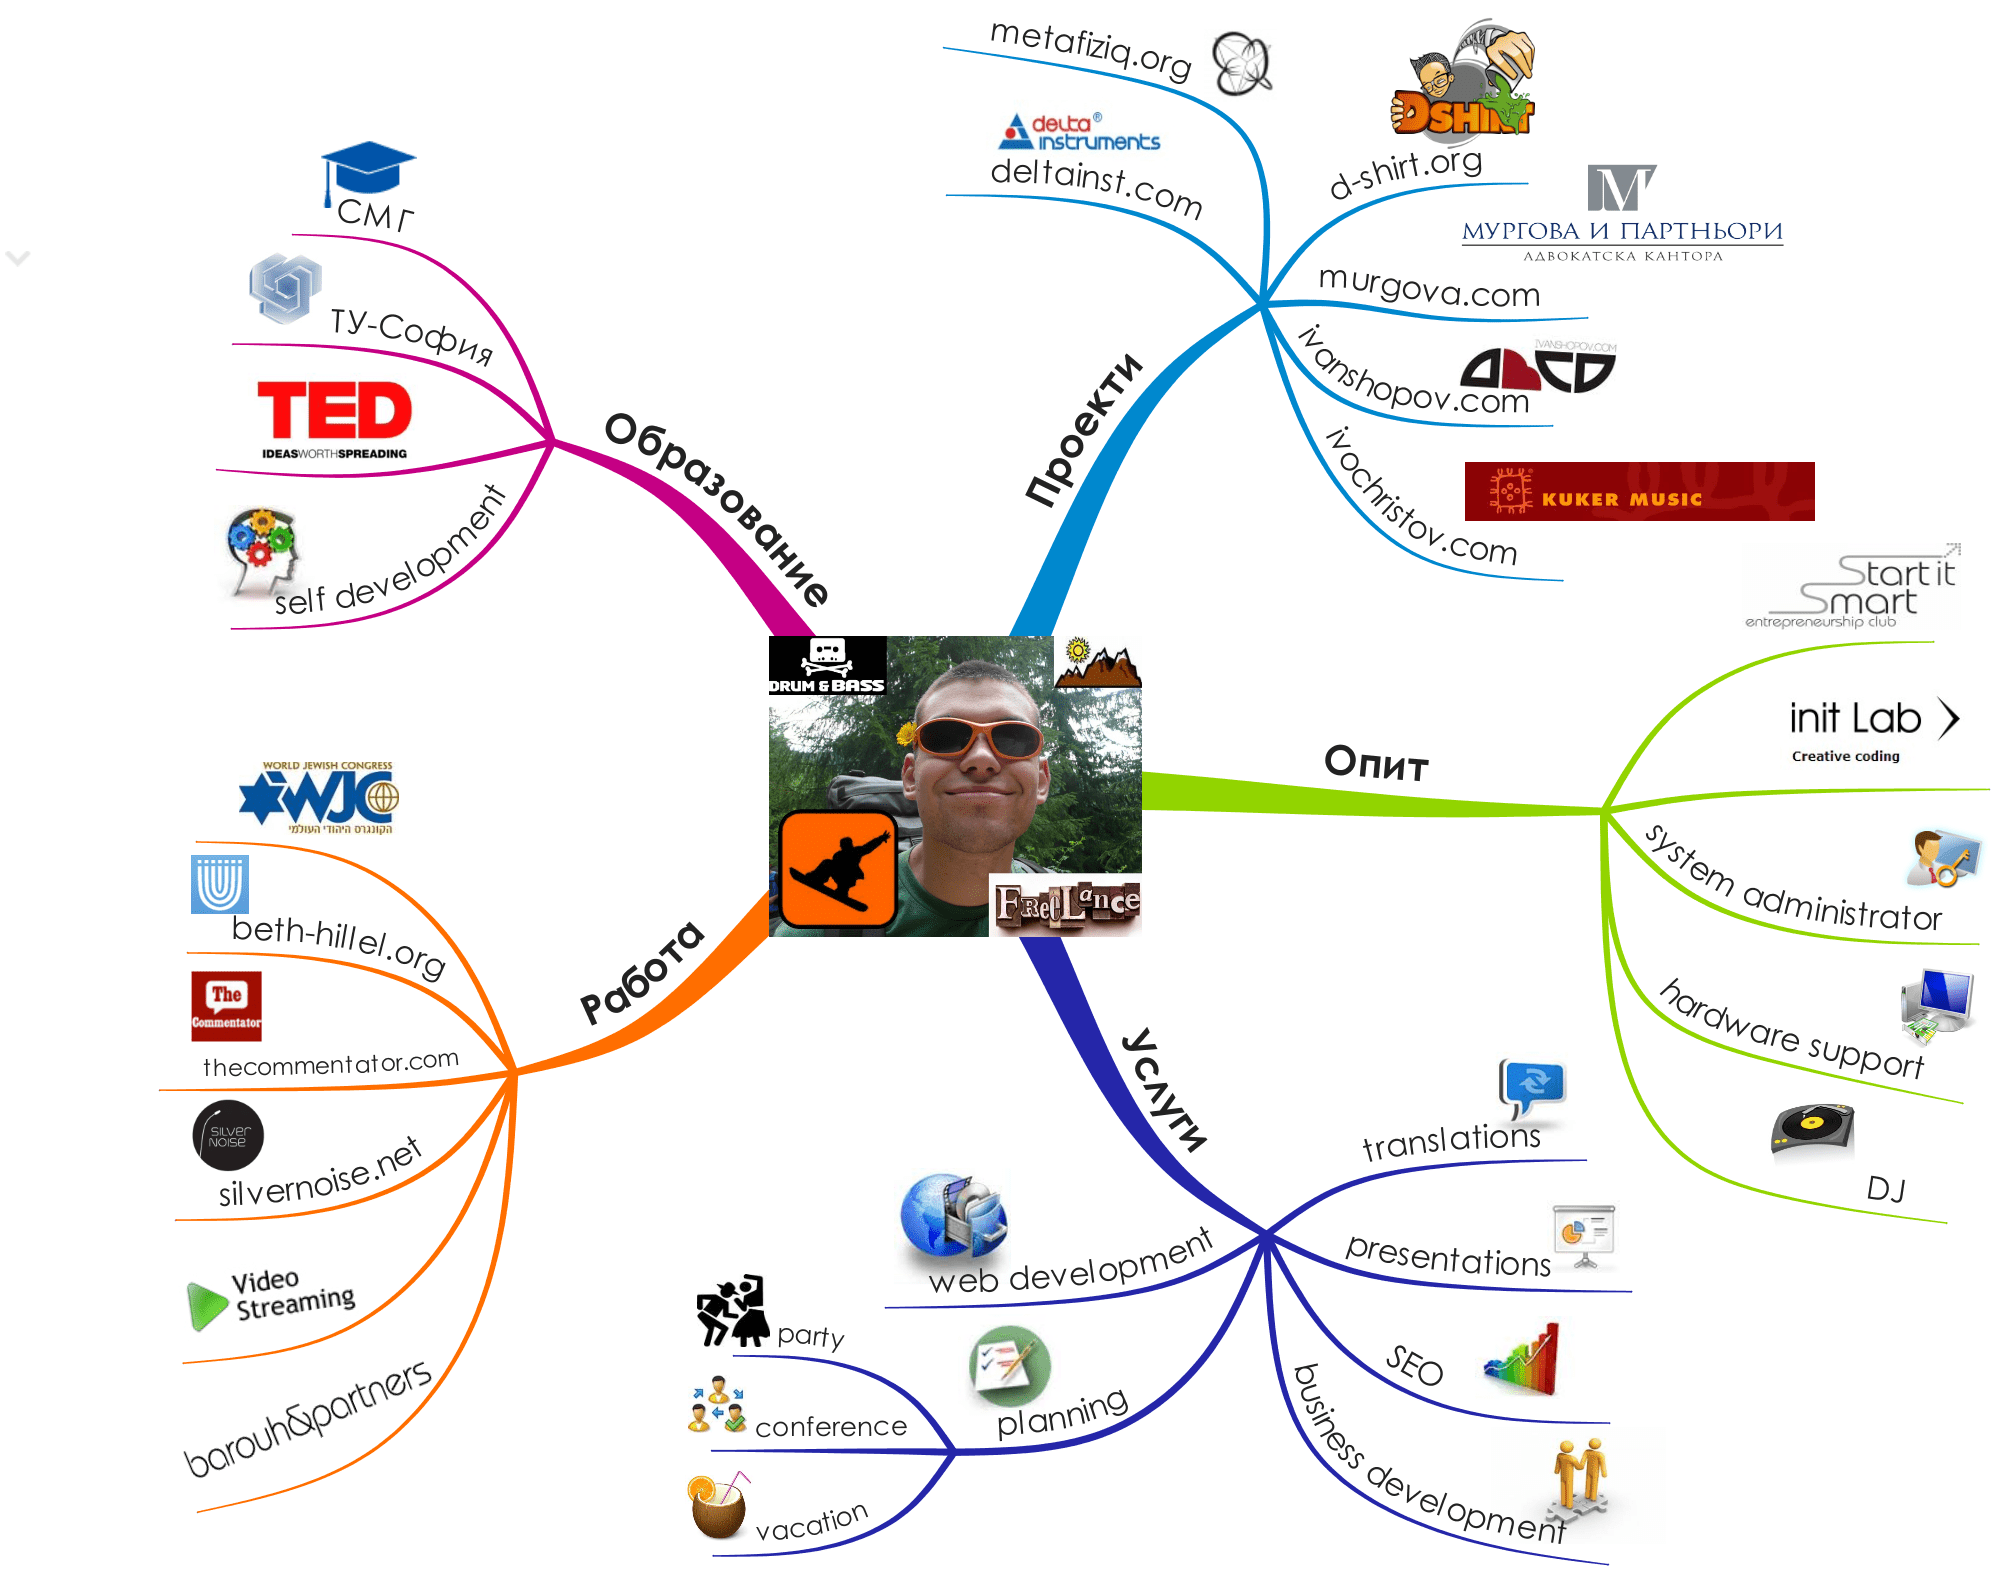 Ruzhekov Com Mind Mapping And My New Cool CV!